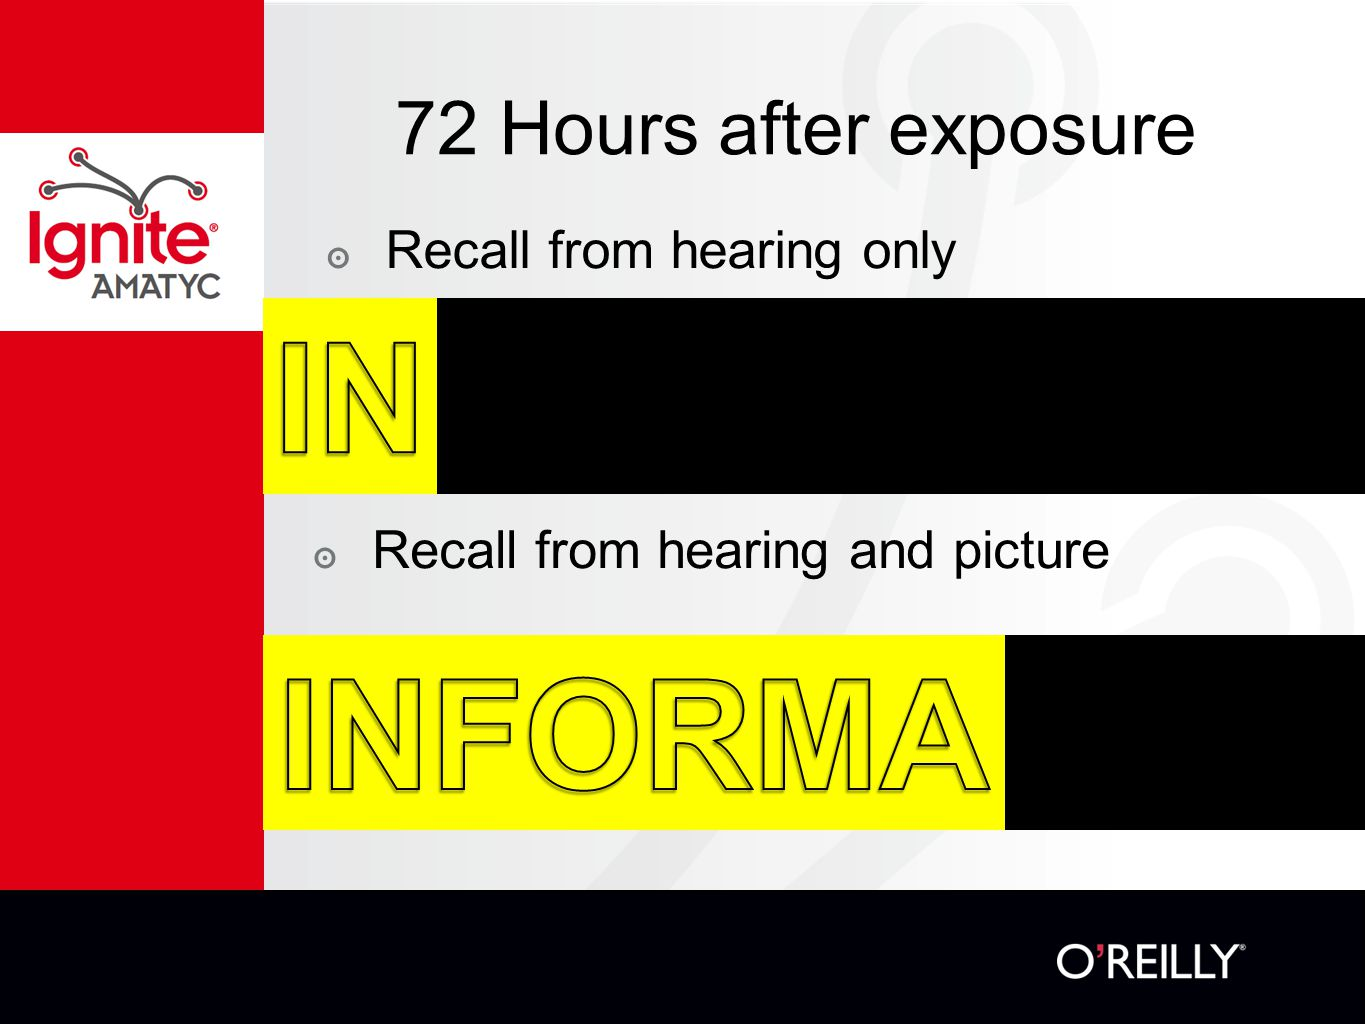 72 Hours after exposure ๏ Recall from hearing only ๏ Recall from hearing and picture